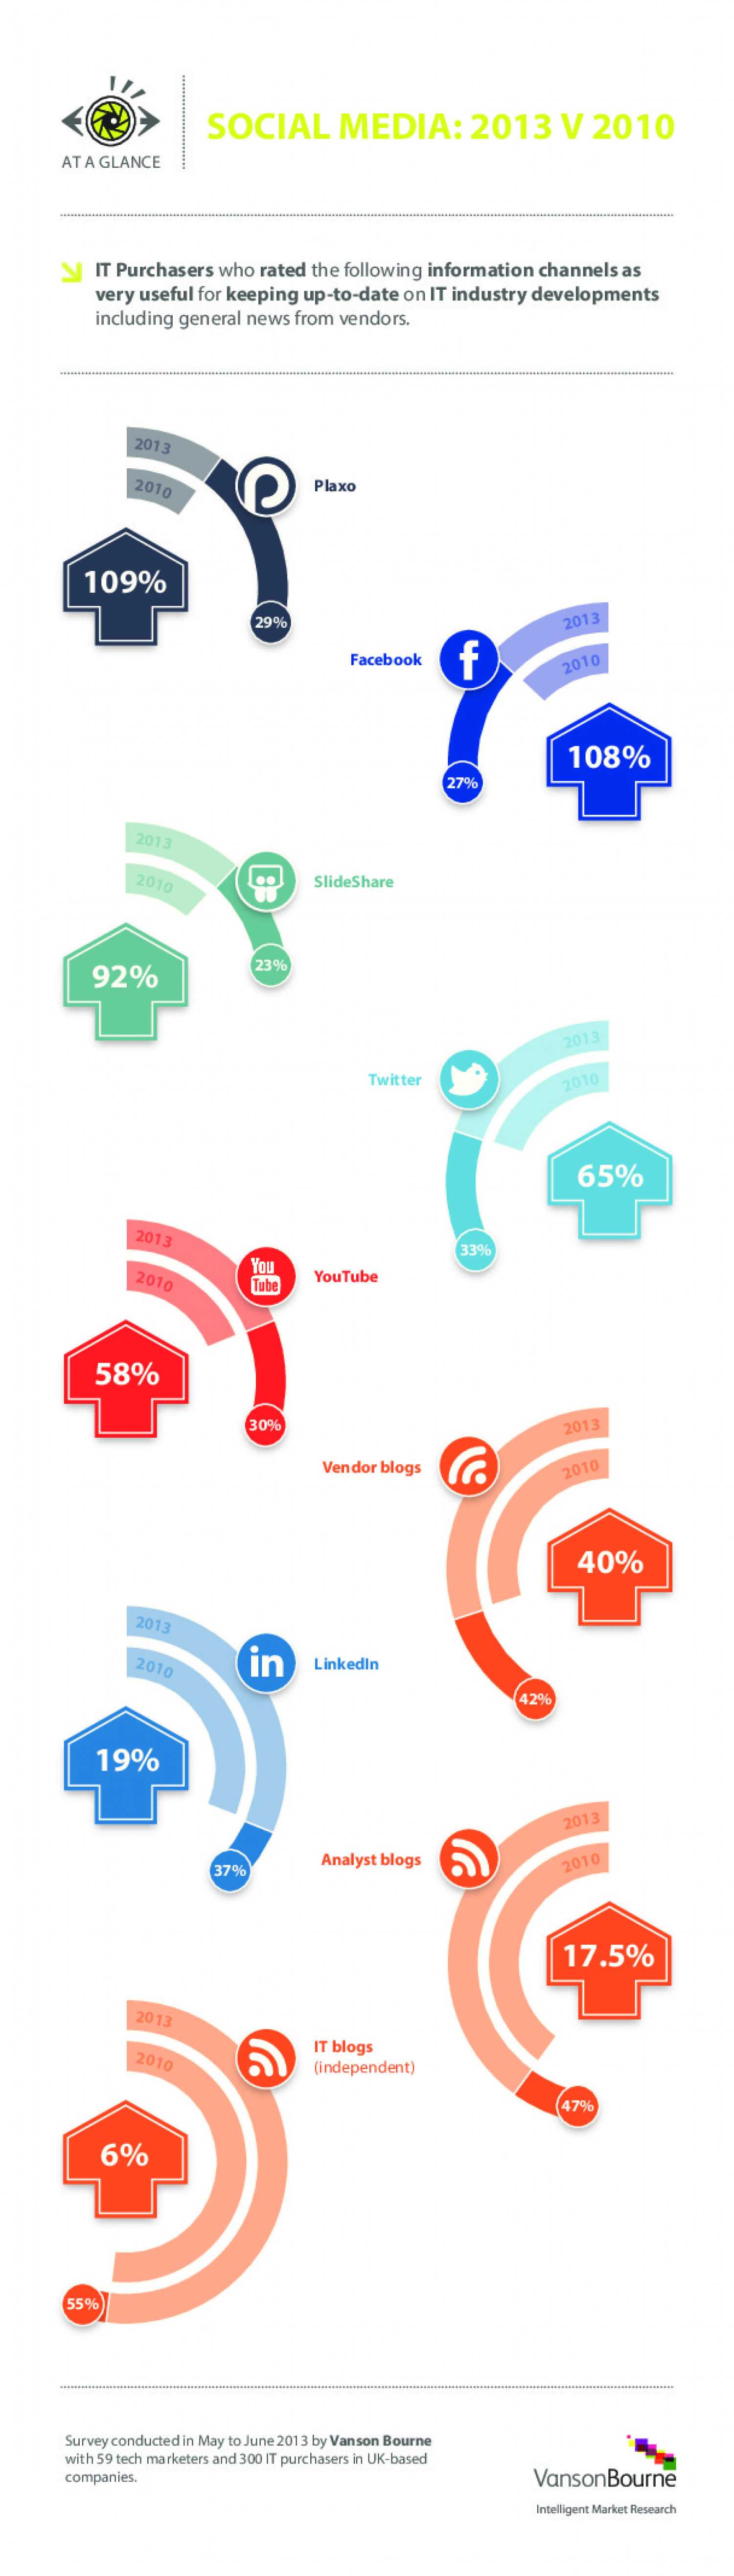 Social Media In IT: 2010 v 2013 Infographic